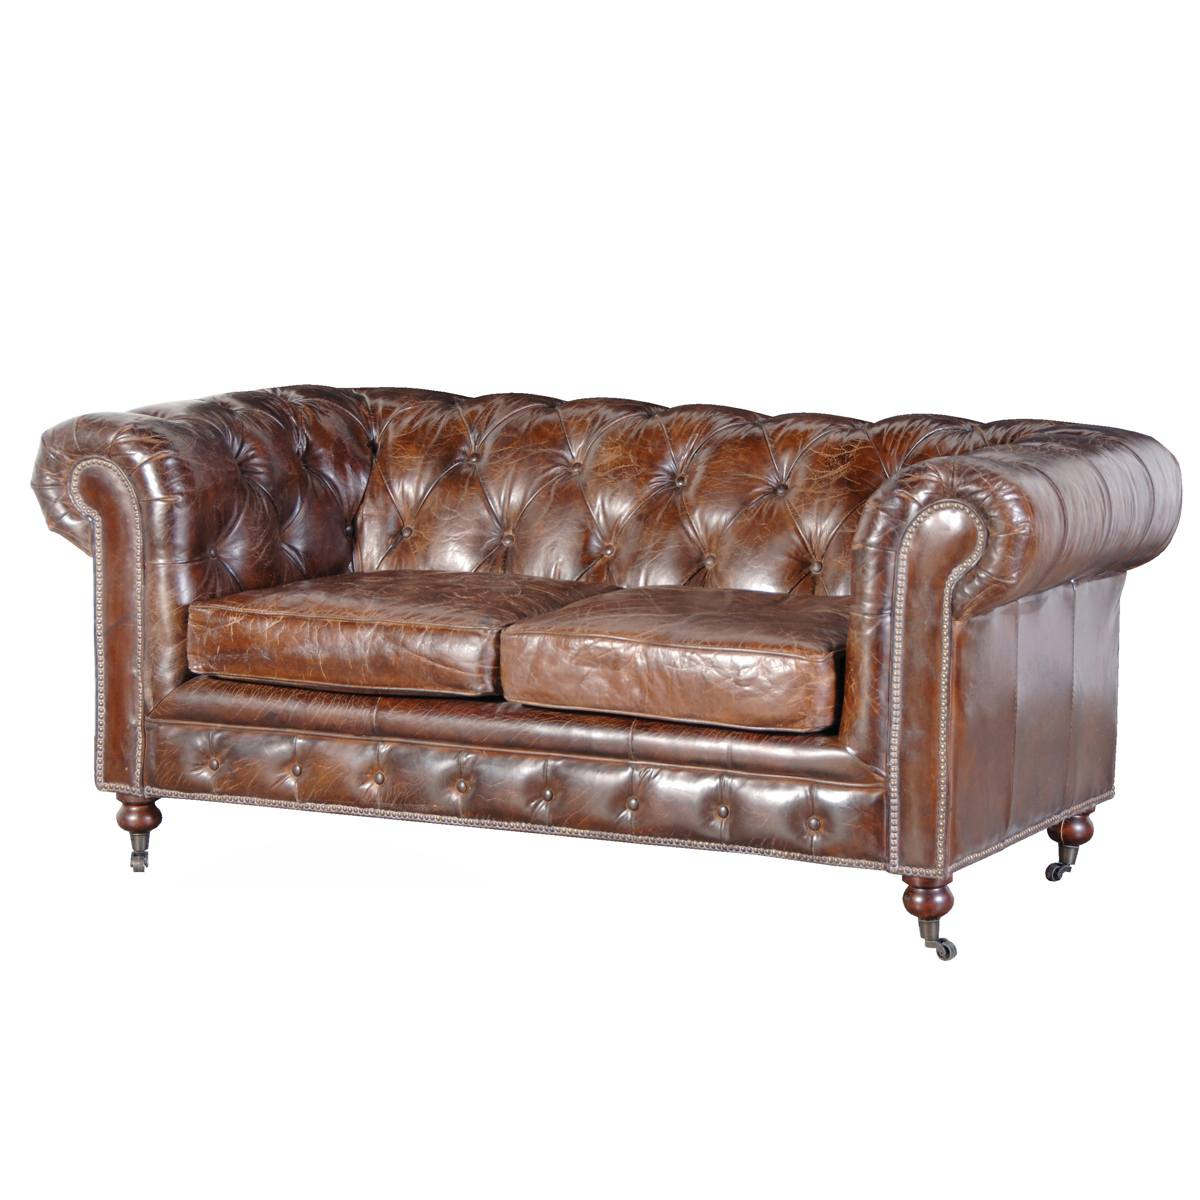 Very Best Brown Leather Chesterfield Sofa 1200 x 1200 · 343 kB · jpeg